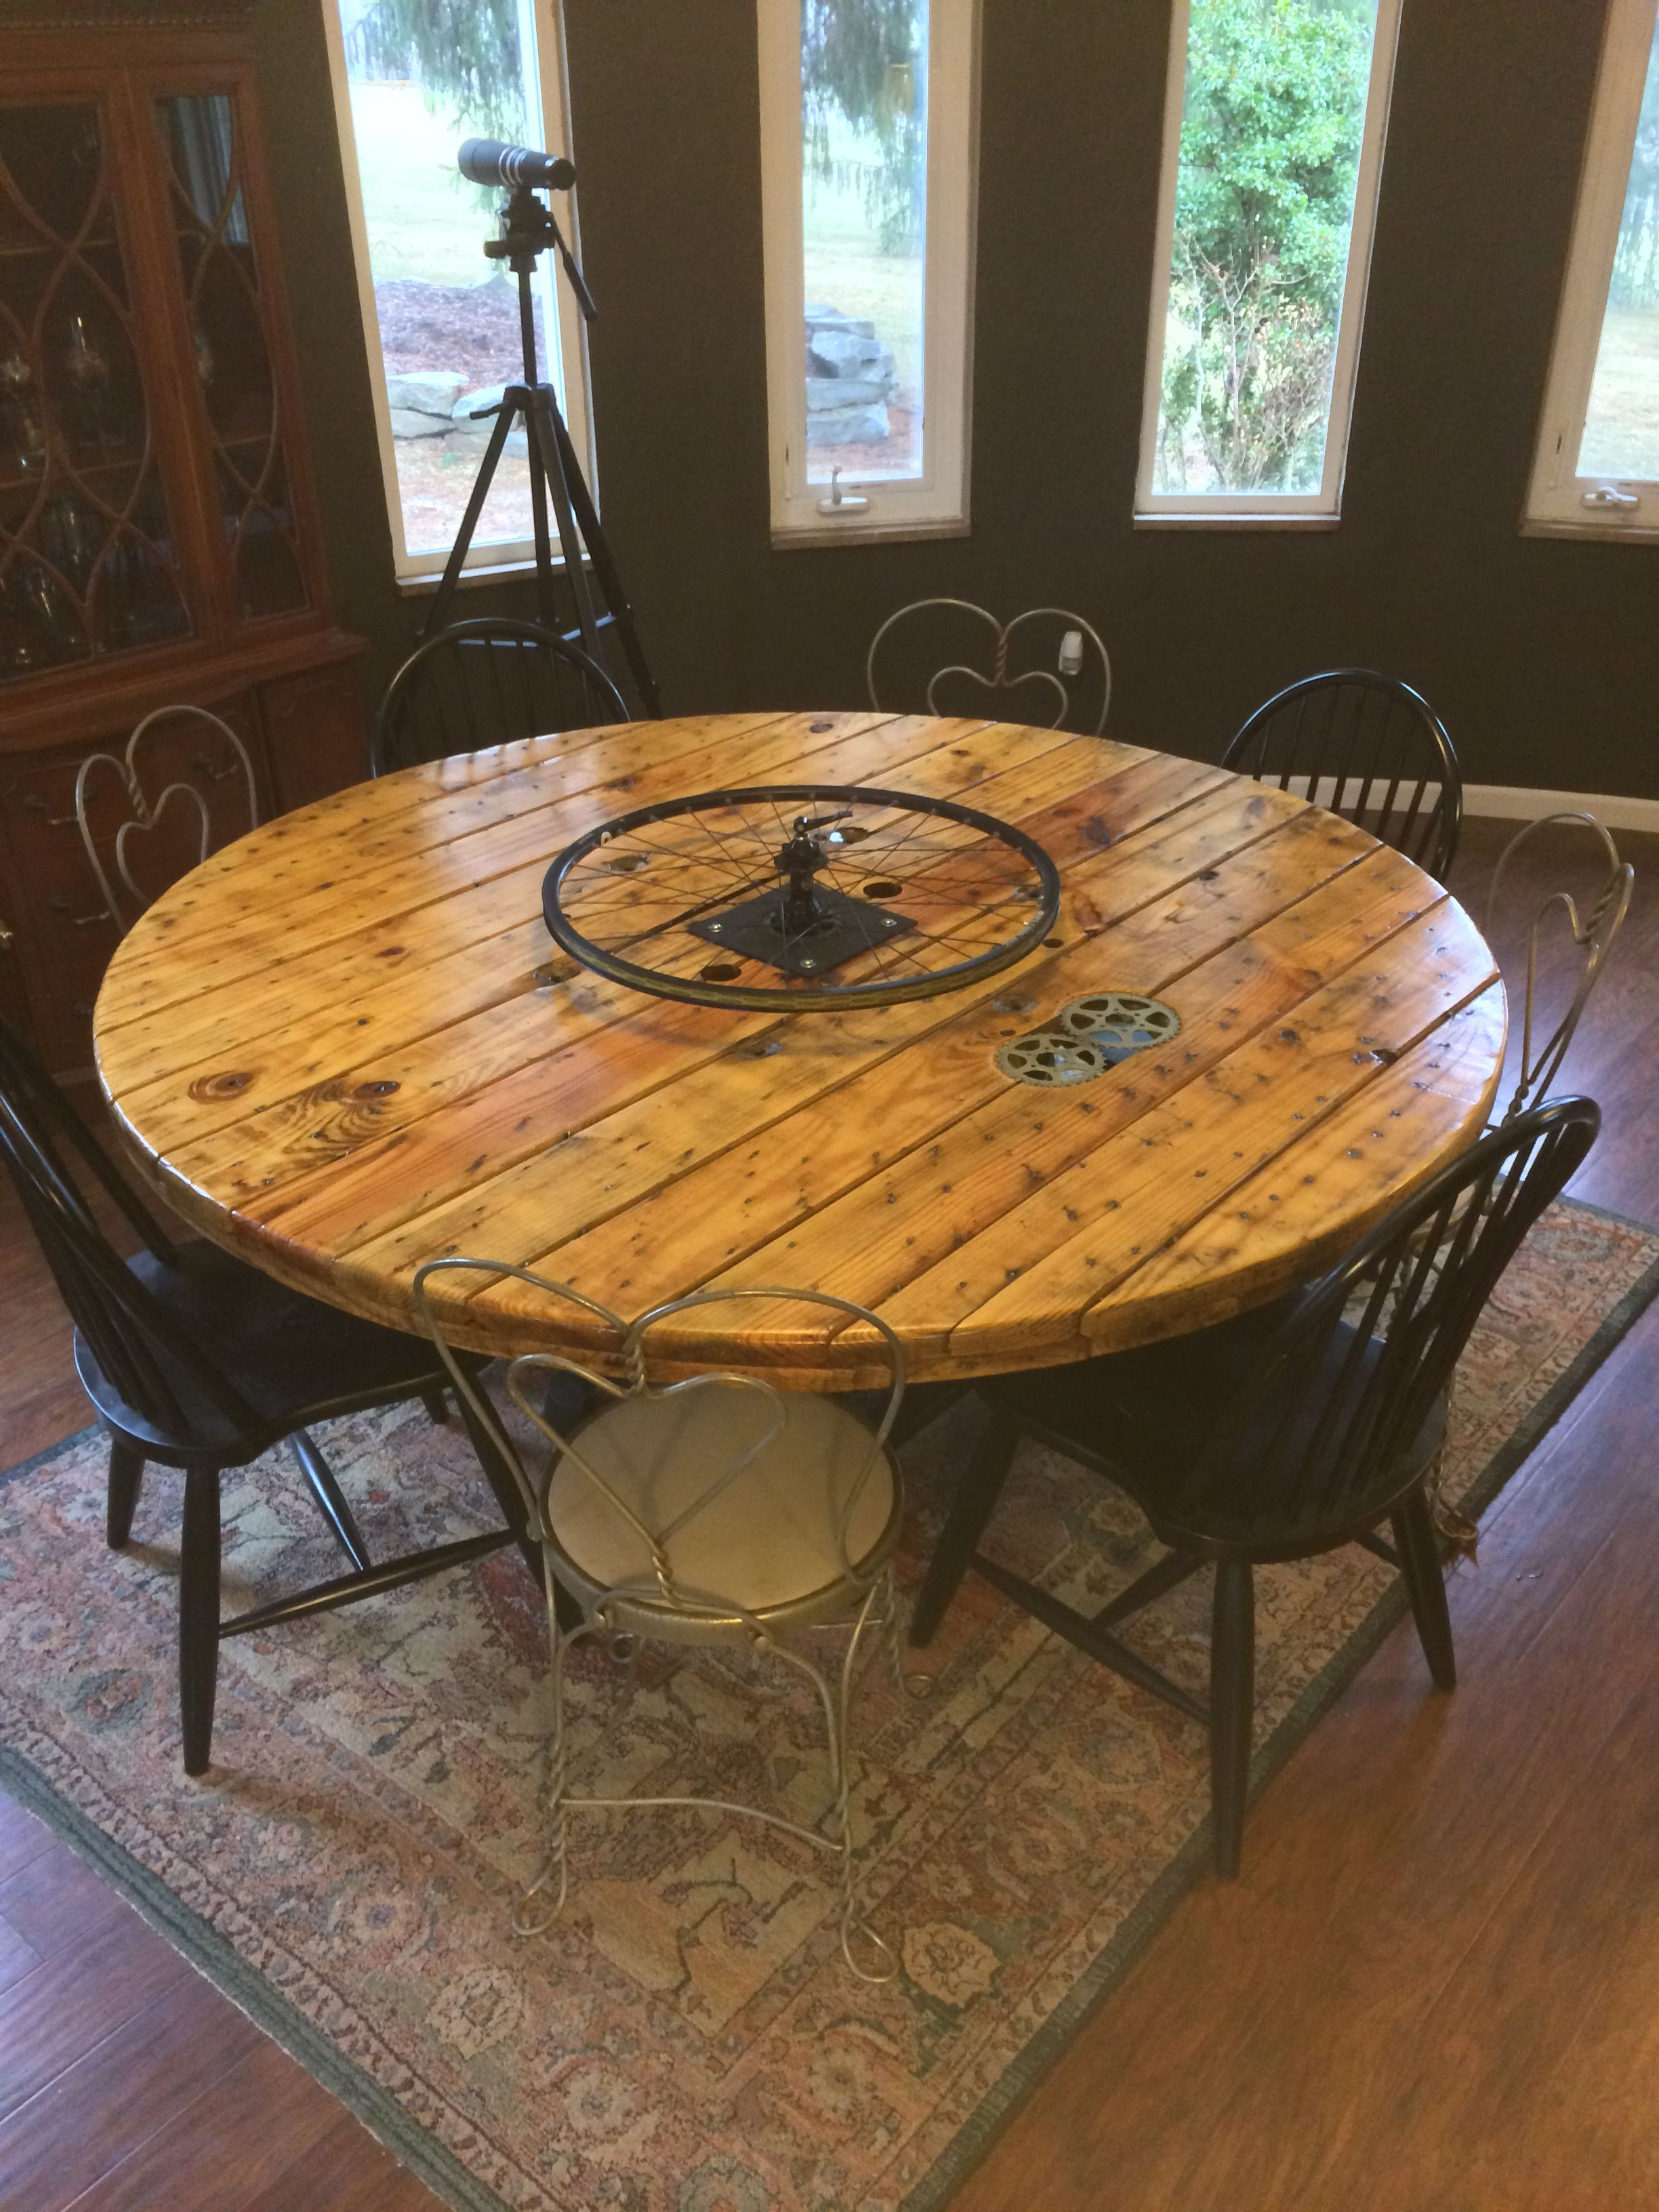 Wire spool table google search kitchen table for Cable reel table